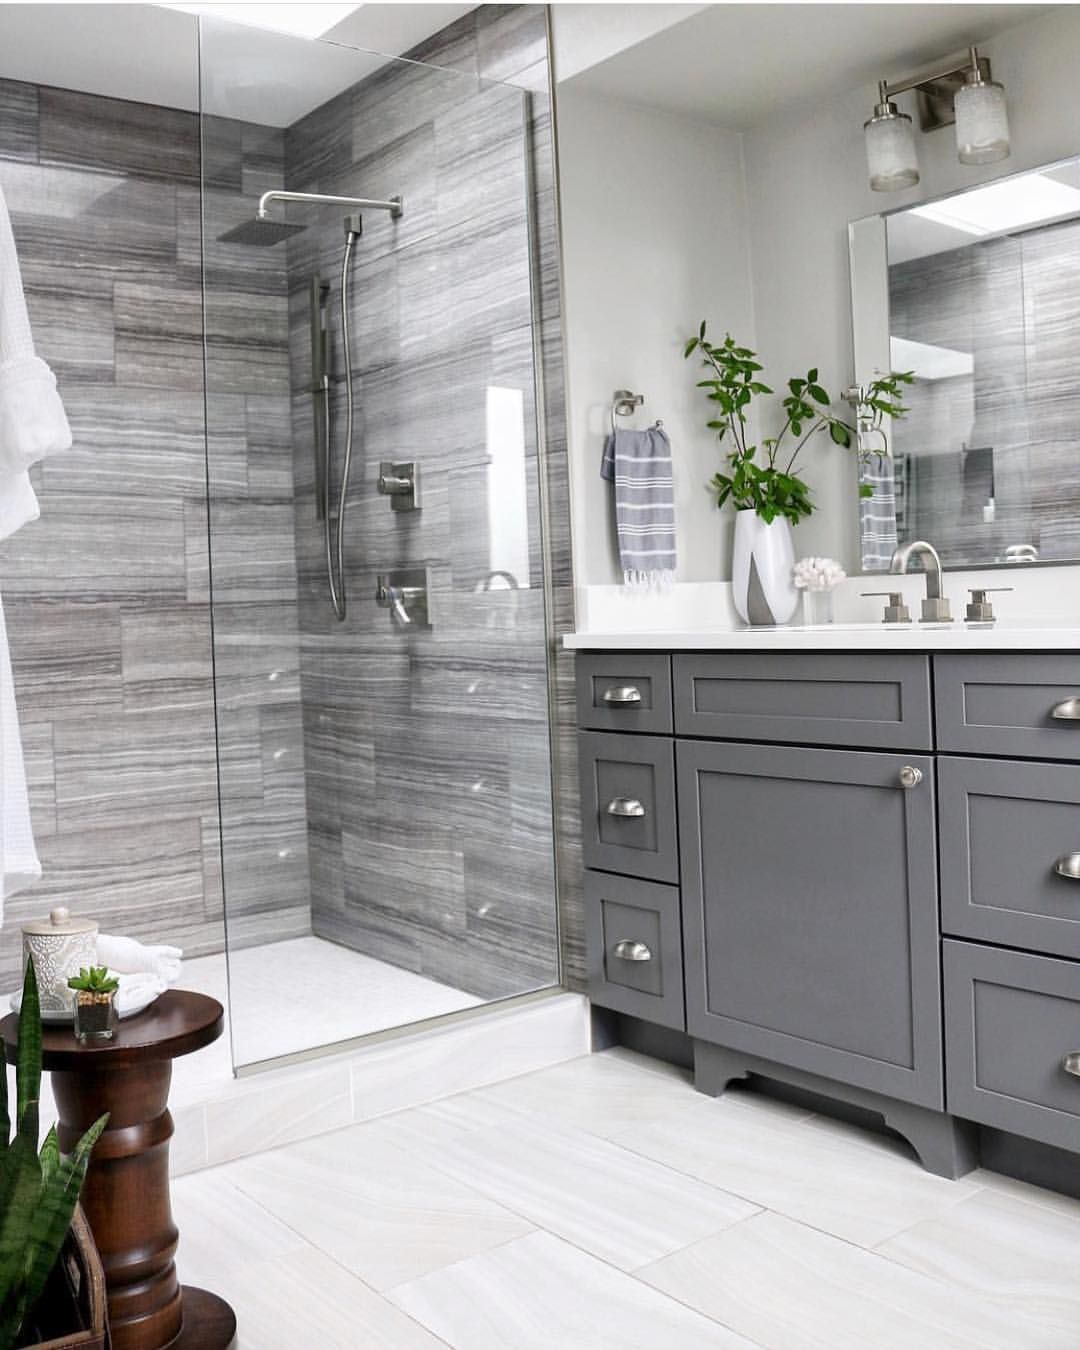 Double Bathroom Vanity Designs Ideas If Space Authorizations 2 Sink Areas Provide Wonderful Benefi Restroom Remodel Bathrooms Remodel Small Bathroom Remodel